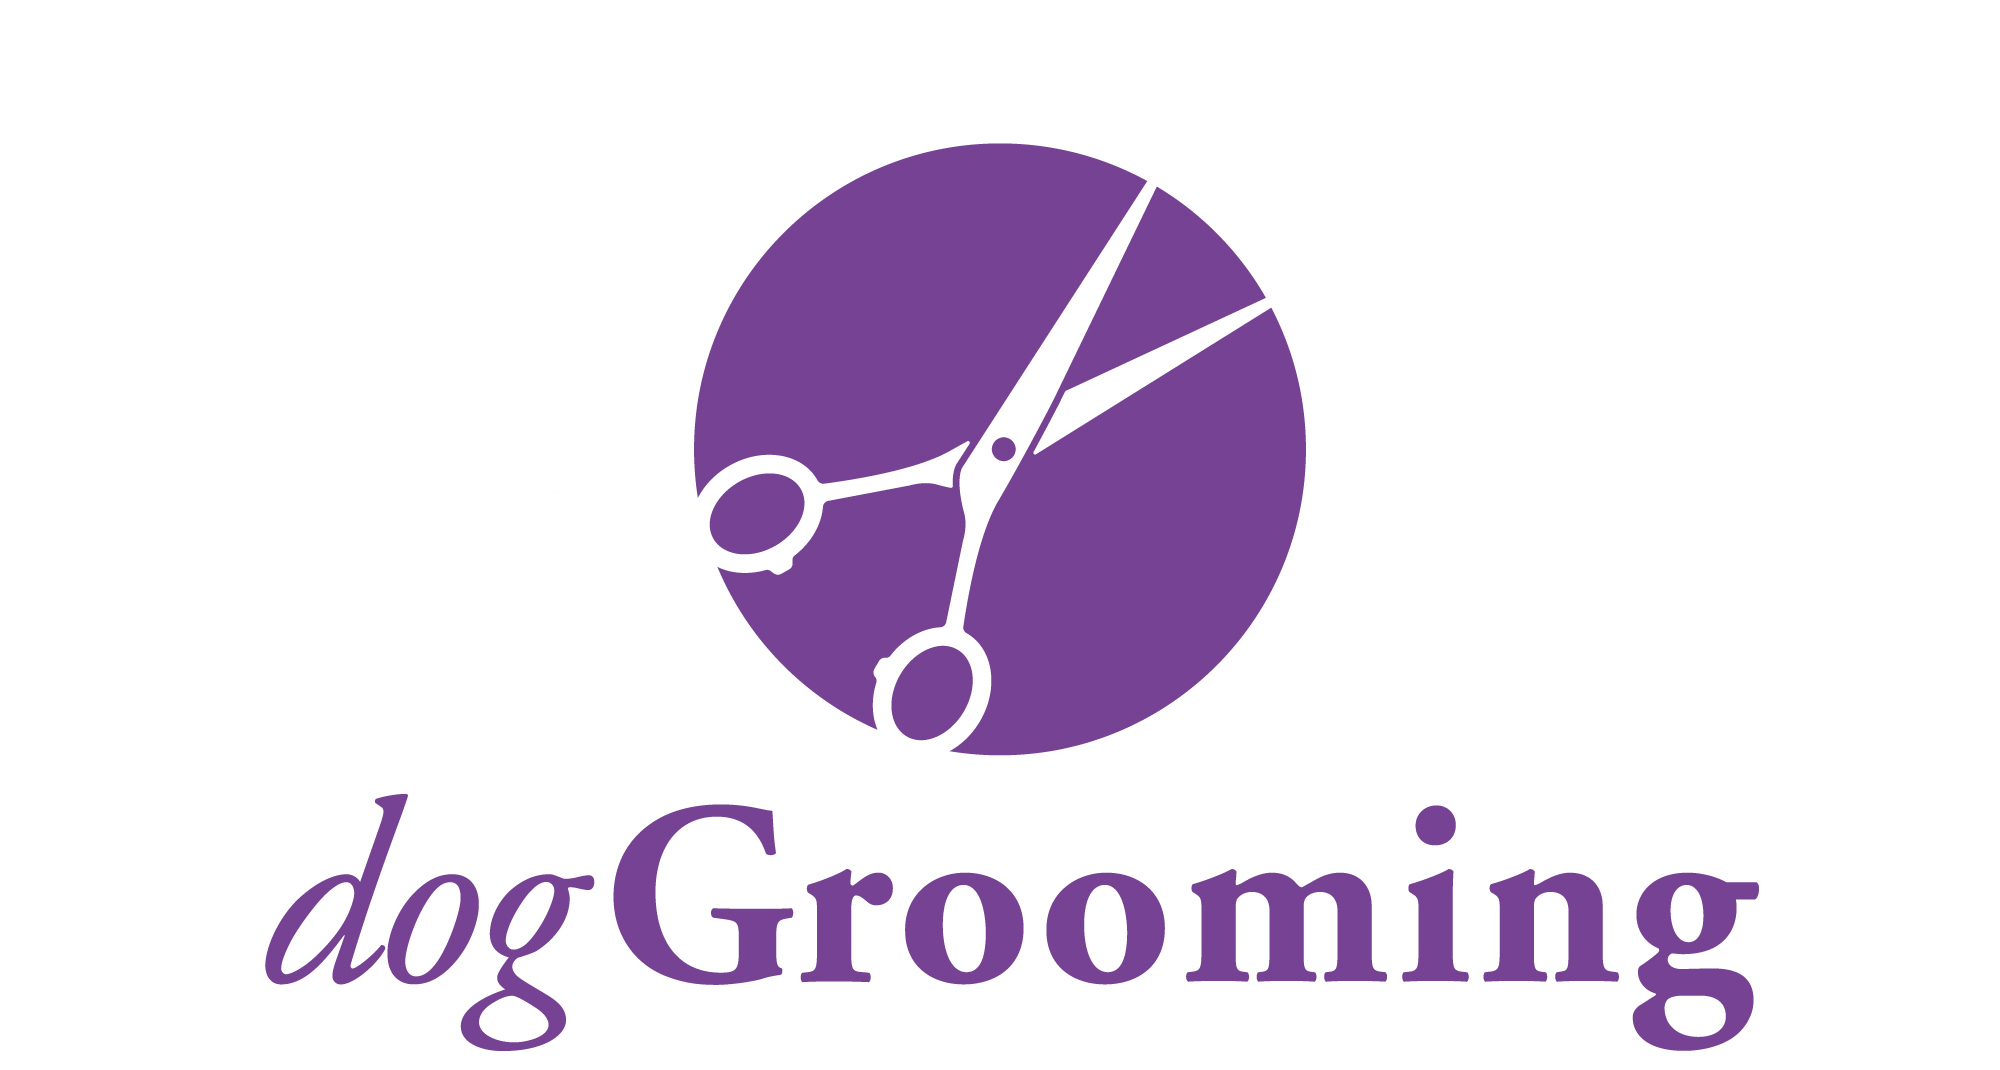 Snobby Dogs Dog Grooming